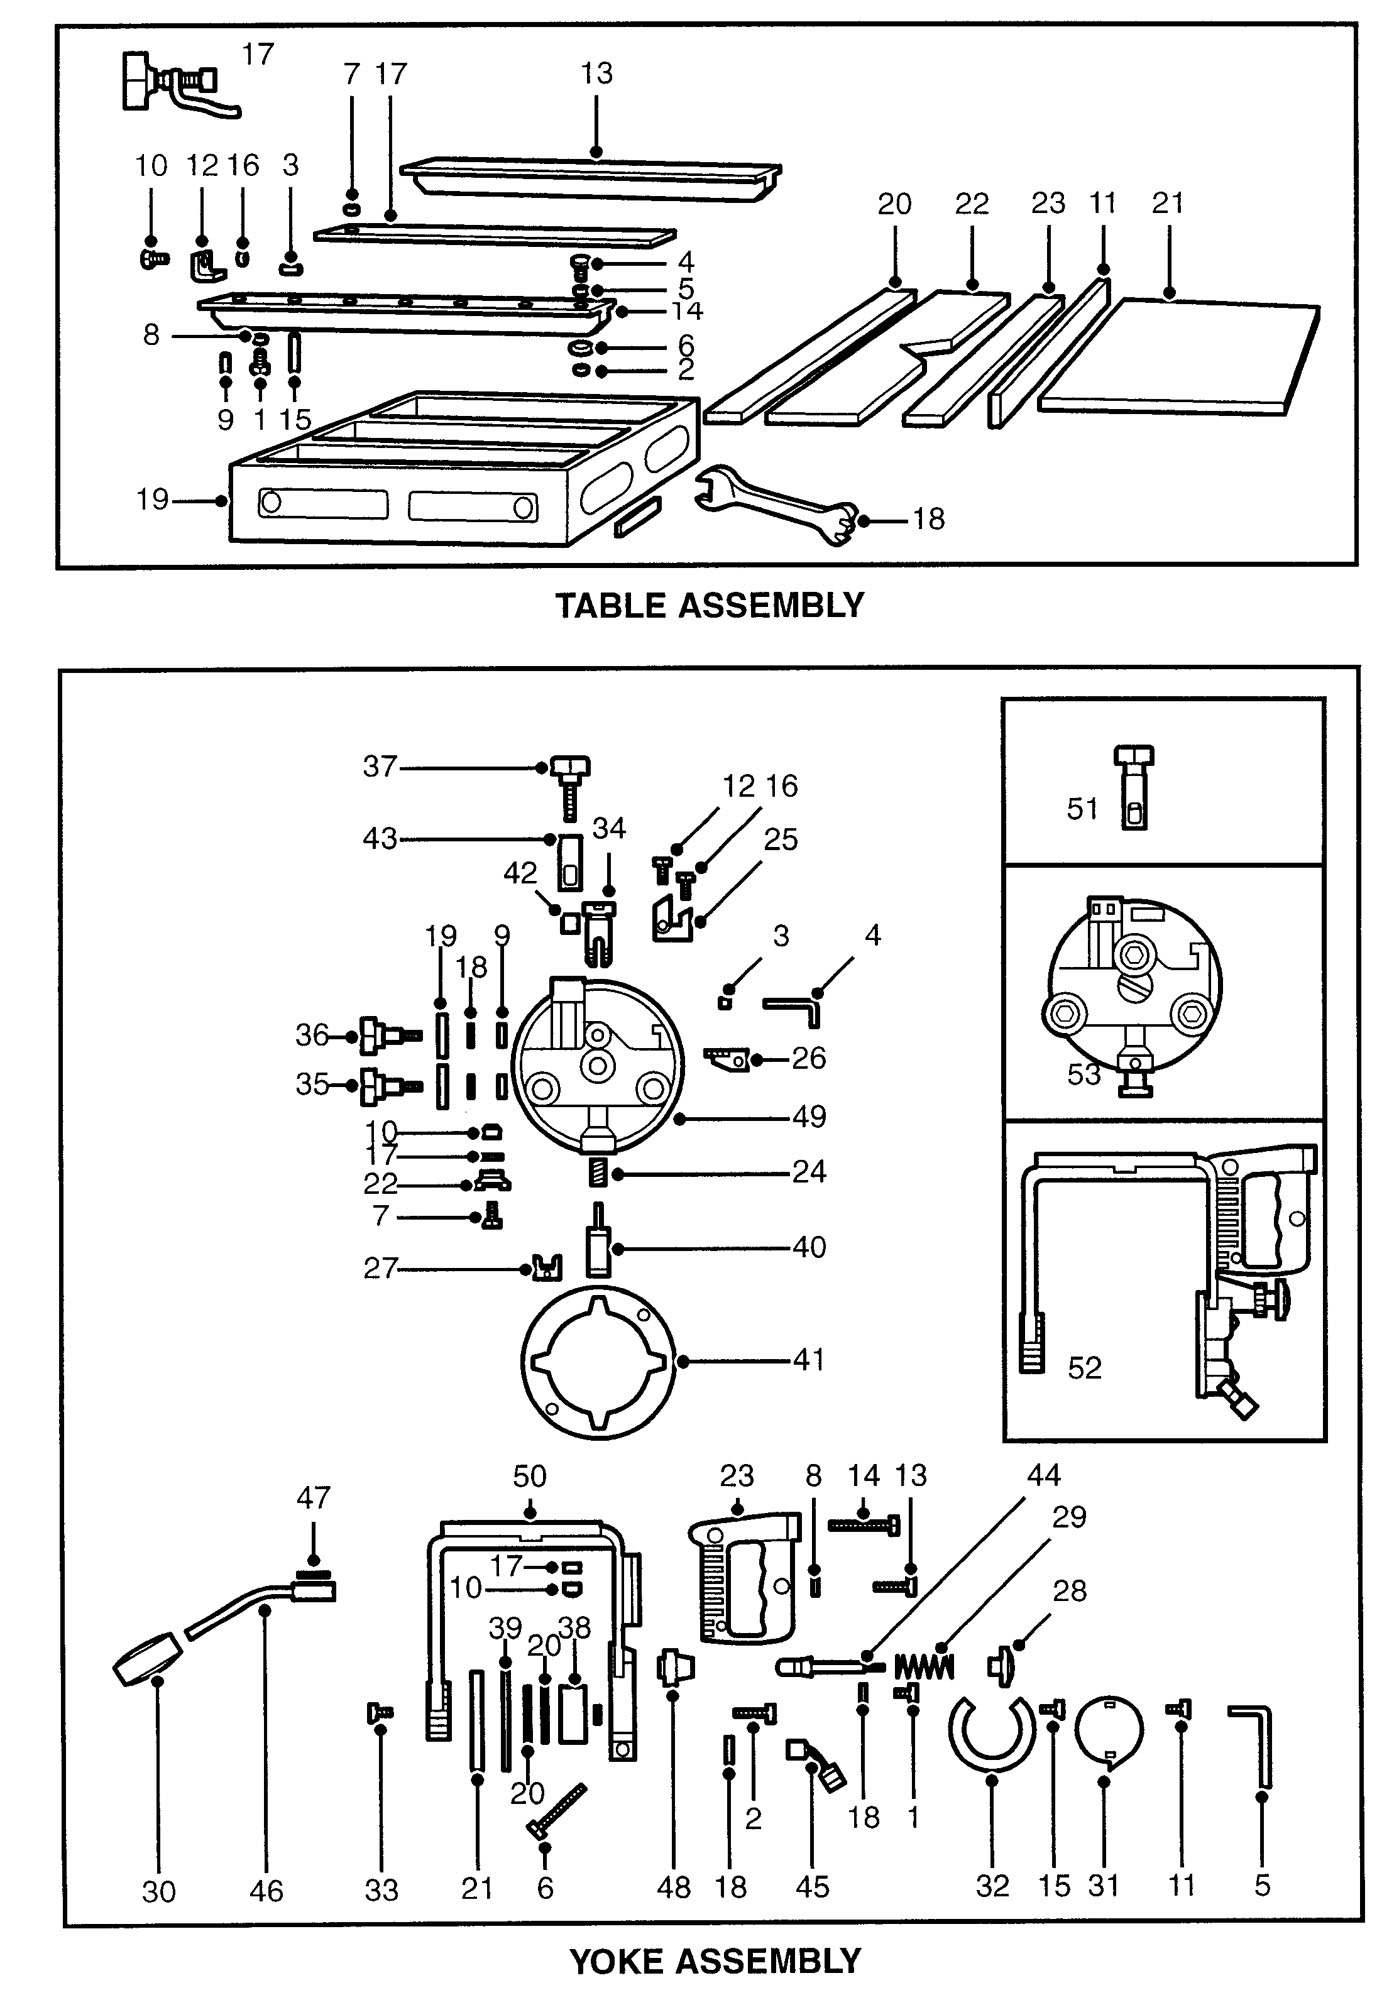 hight resolution of spares for dewalt dw125 type 1 from power tool